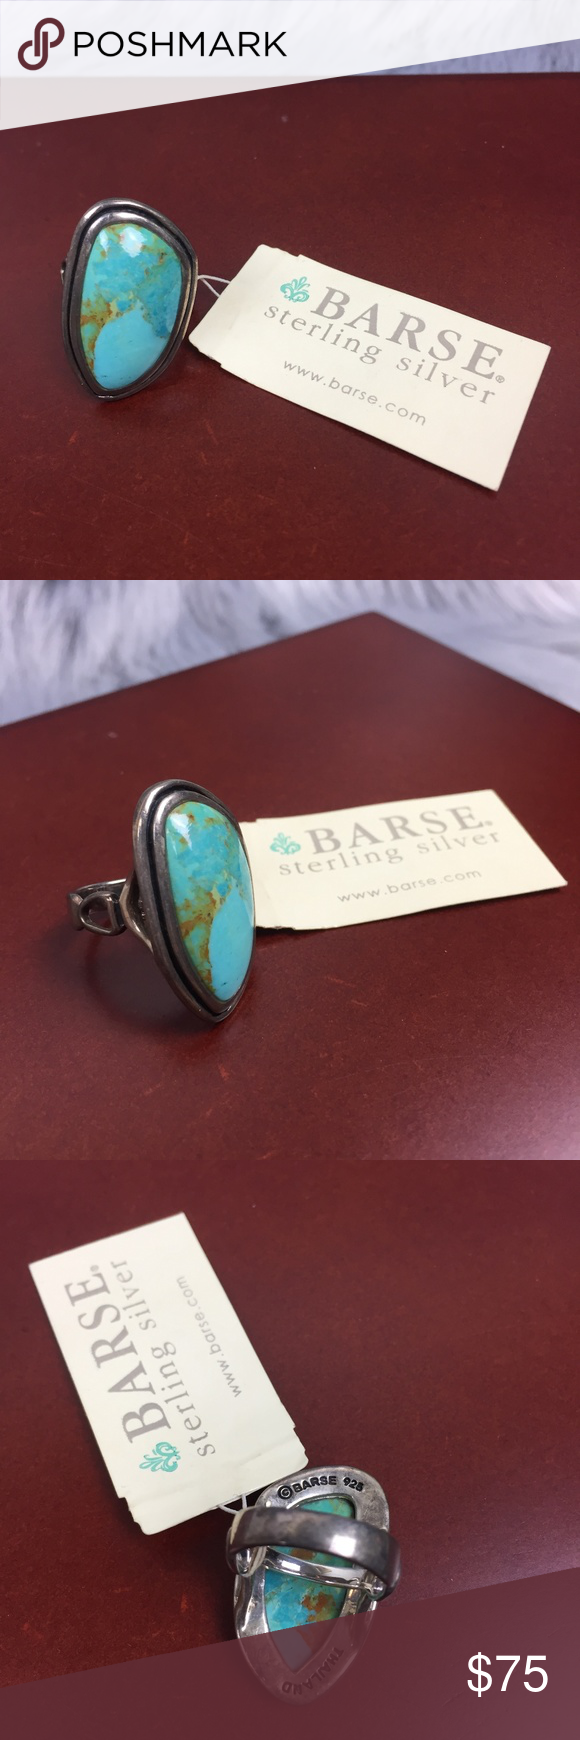 66a51063552b7 Barse Genuine Turquoise Sterling Silver 925 Ring NEW WITH TAG! Barse ...